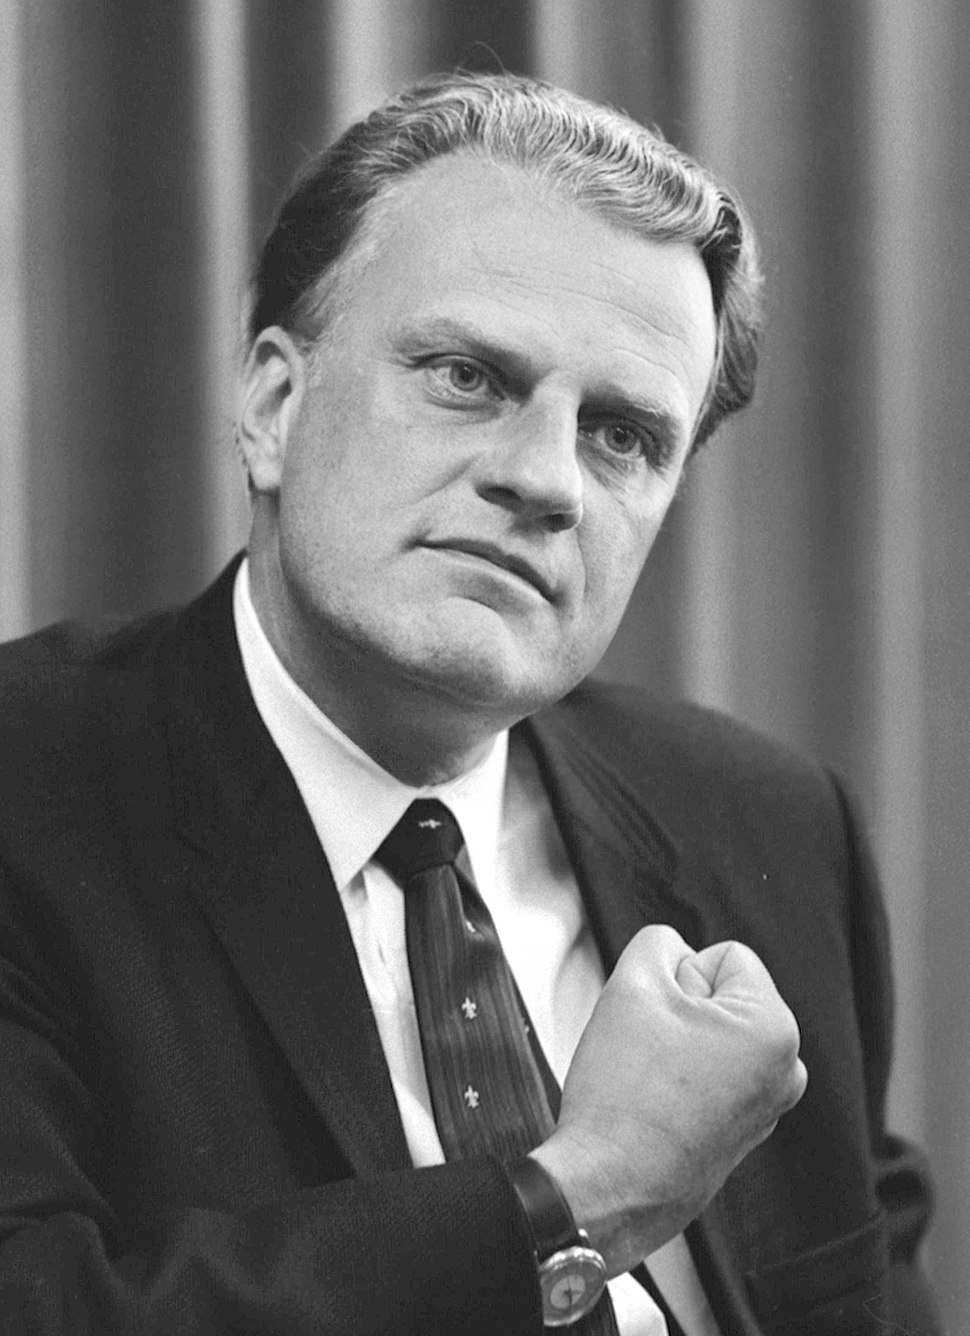 Billy Graham bw photo, April 11, 1966